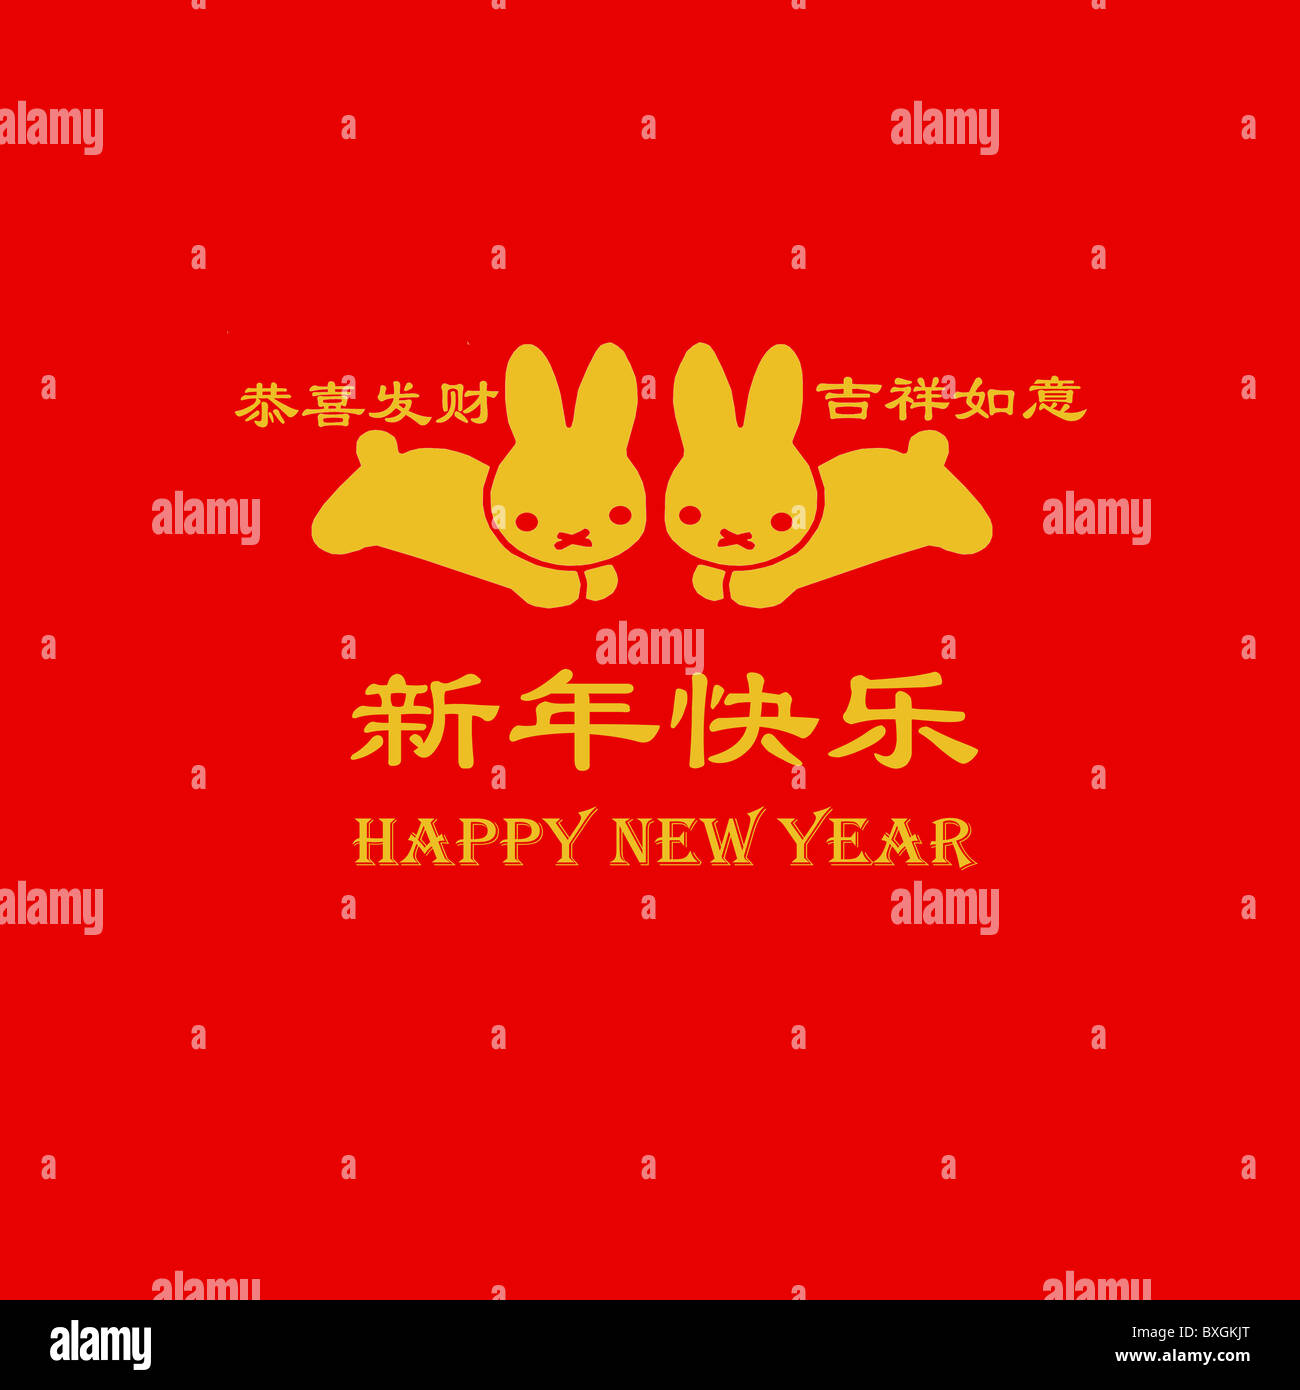 Chinese New Year Greeting Card With Chinese Characters Stock Photo